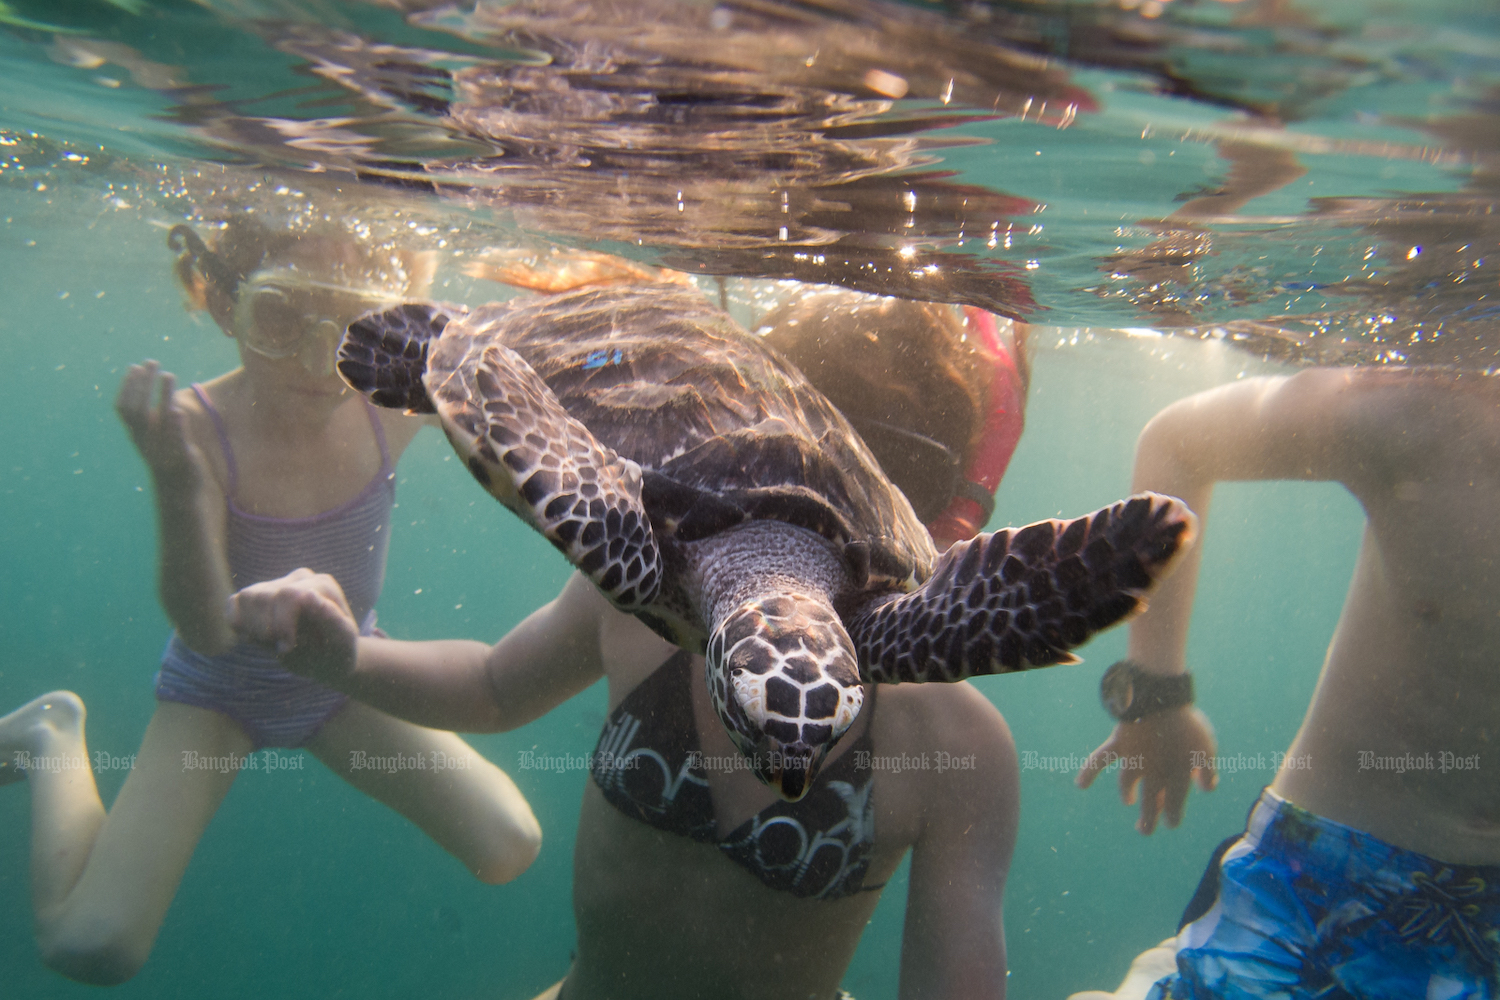 """In an image from 2016, a juvenile Hawksbill sea turtle that had been raised in a """"head start"""" programme swims out toward the open sea after being released by young volunteers from the local community group on Koh Tao in Surat Thani. (Bangkok Post File Photo)"""